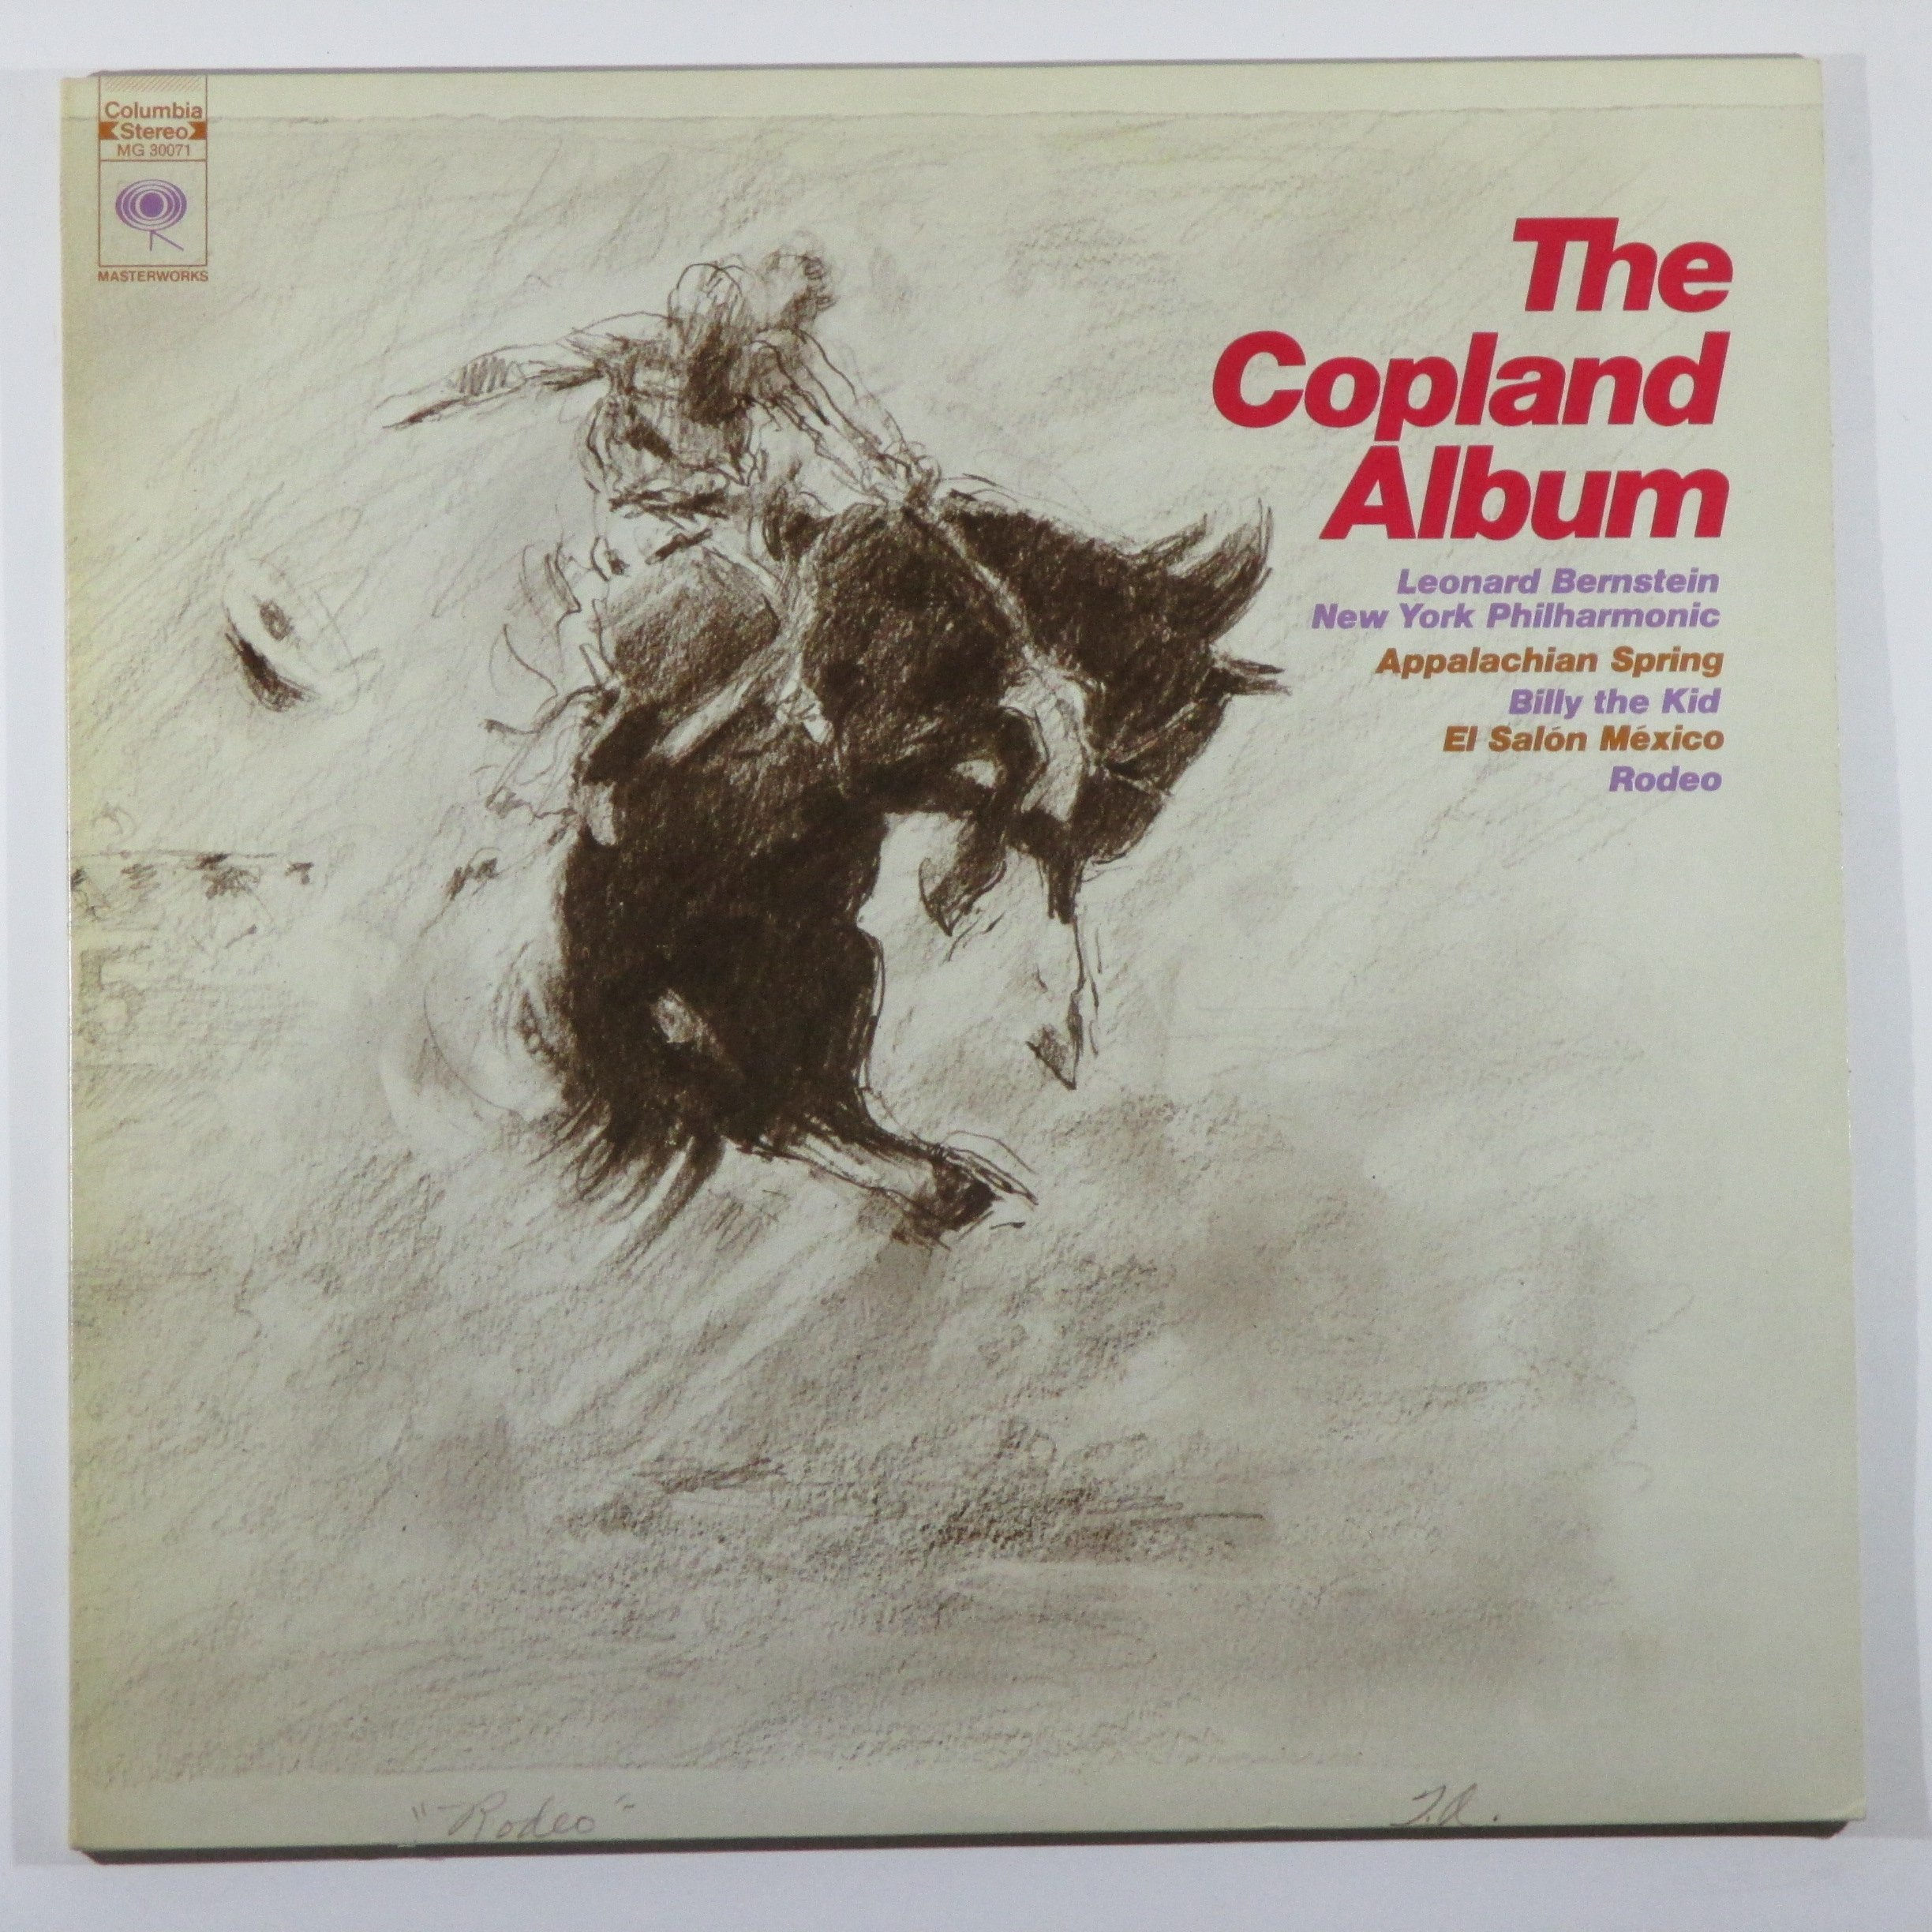 The Copland Album:  Appalachian Spring / Billy the Kid / El Salon Mexico / Rodeo by Columbia Masterworks